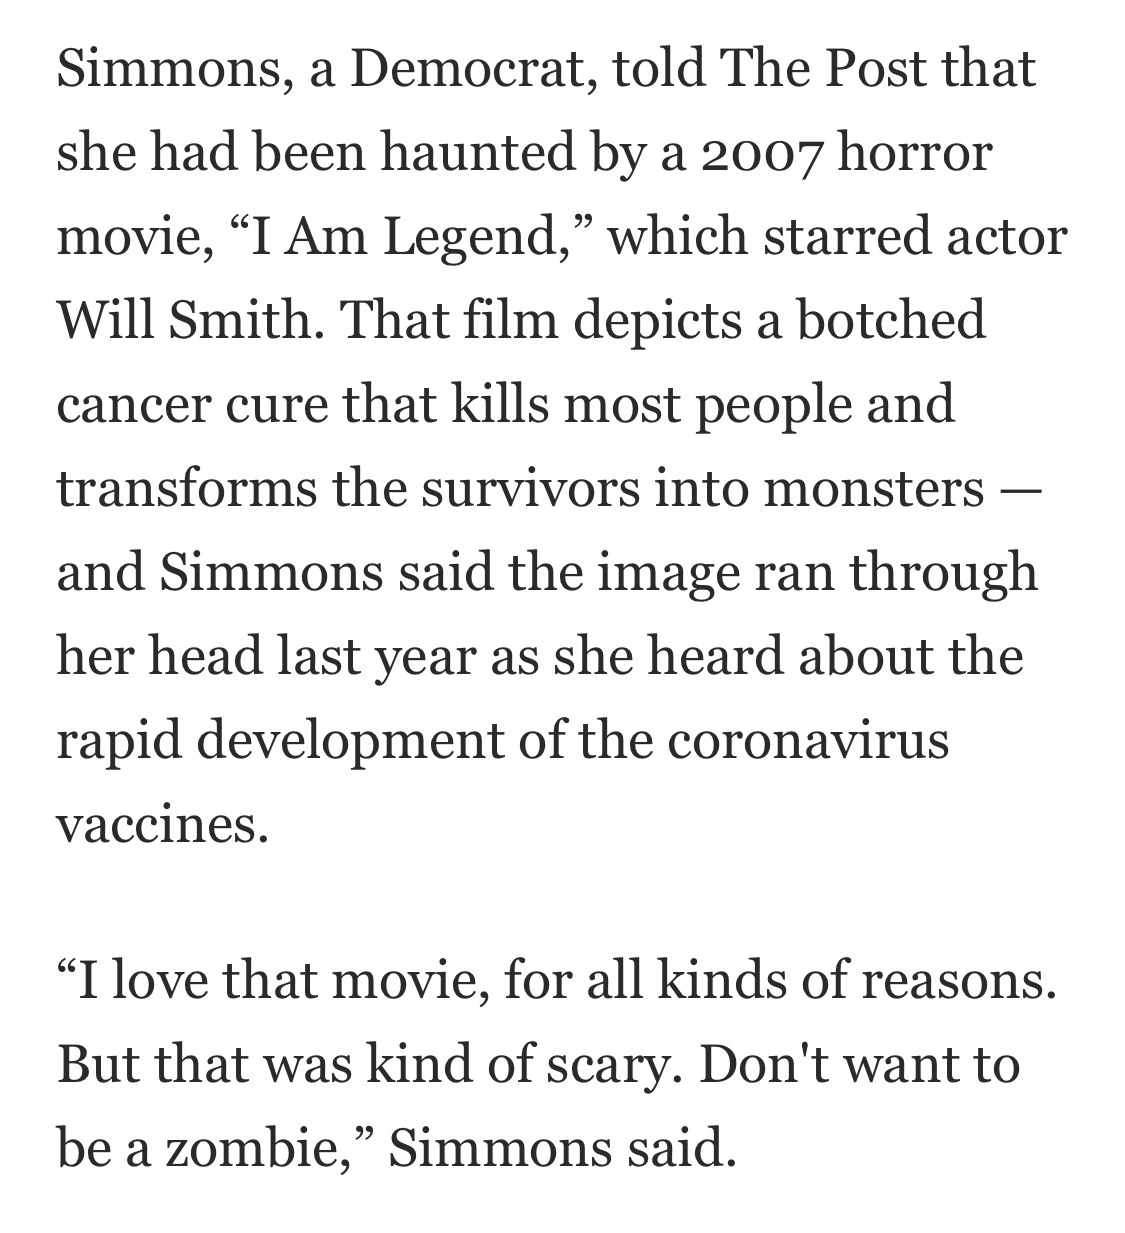 """""""Simmons, a Democrat, told The Post that she had been haunted by a 2007 horror movie, I Am Legend, which starred actor Will Smith. That film depicts a botched cancer cure that kills most people and transforms the survivors into monsters"""""""